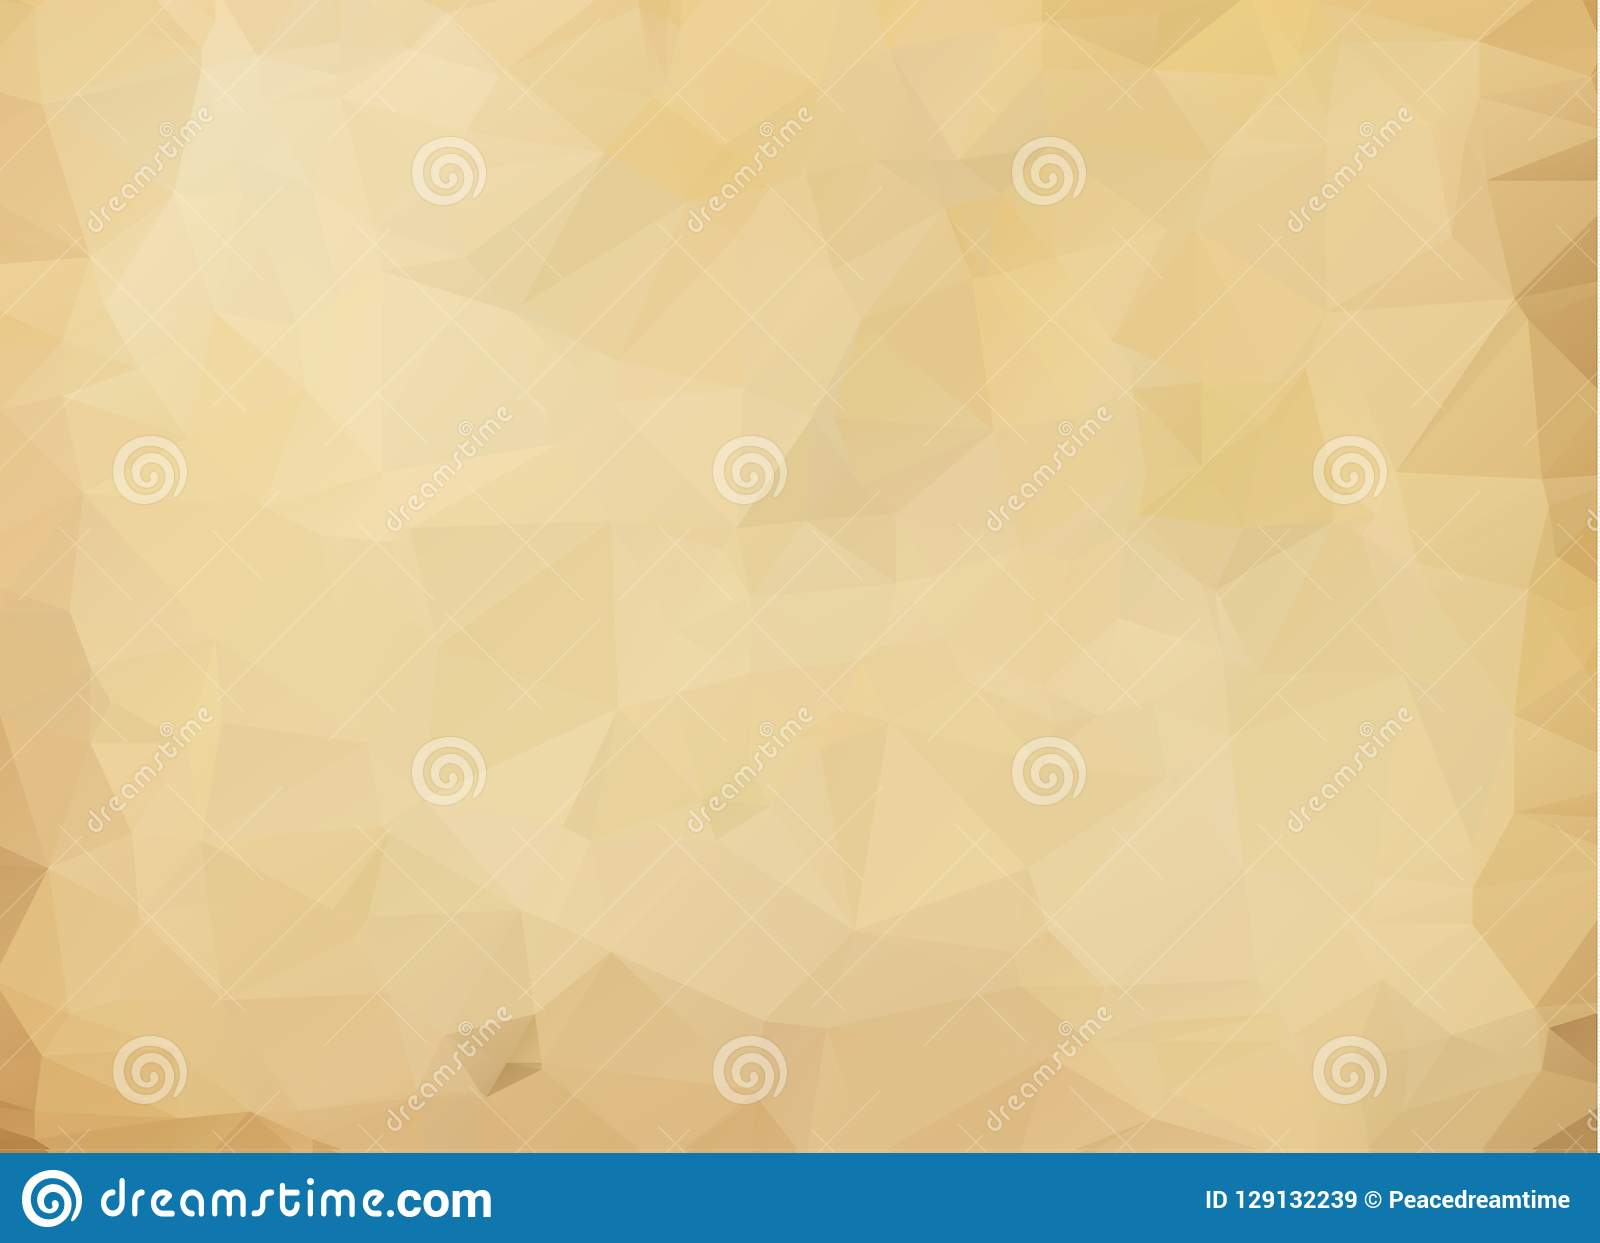 Abstract Orange White and red Polygonal Mosaic Background, Vector illustration, Creative Business Design Templates.